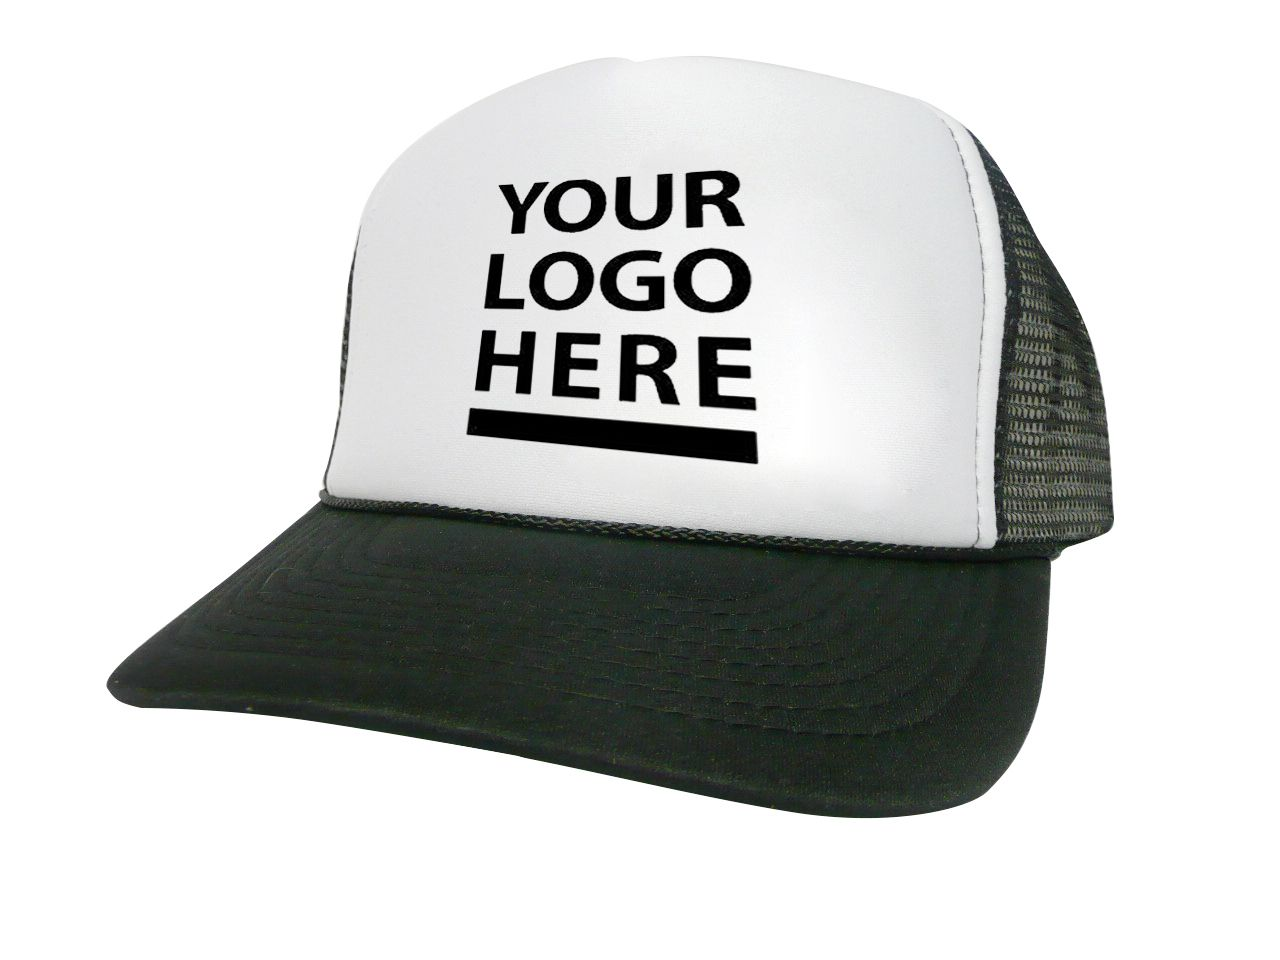 Create A Custom Printed Trucker Hat Mesh Hat Snapback Hat With Your Logo On It Trucker Hat Custom Trucker Hats Snapback Hats